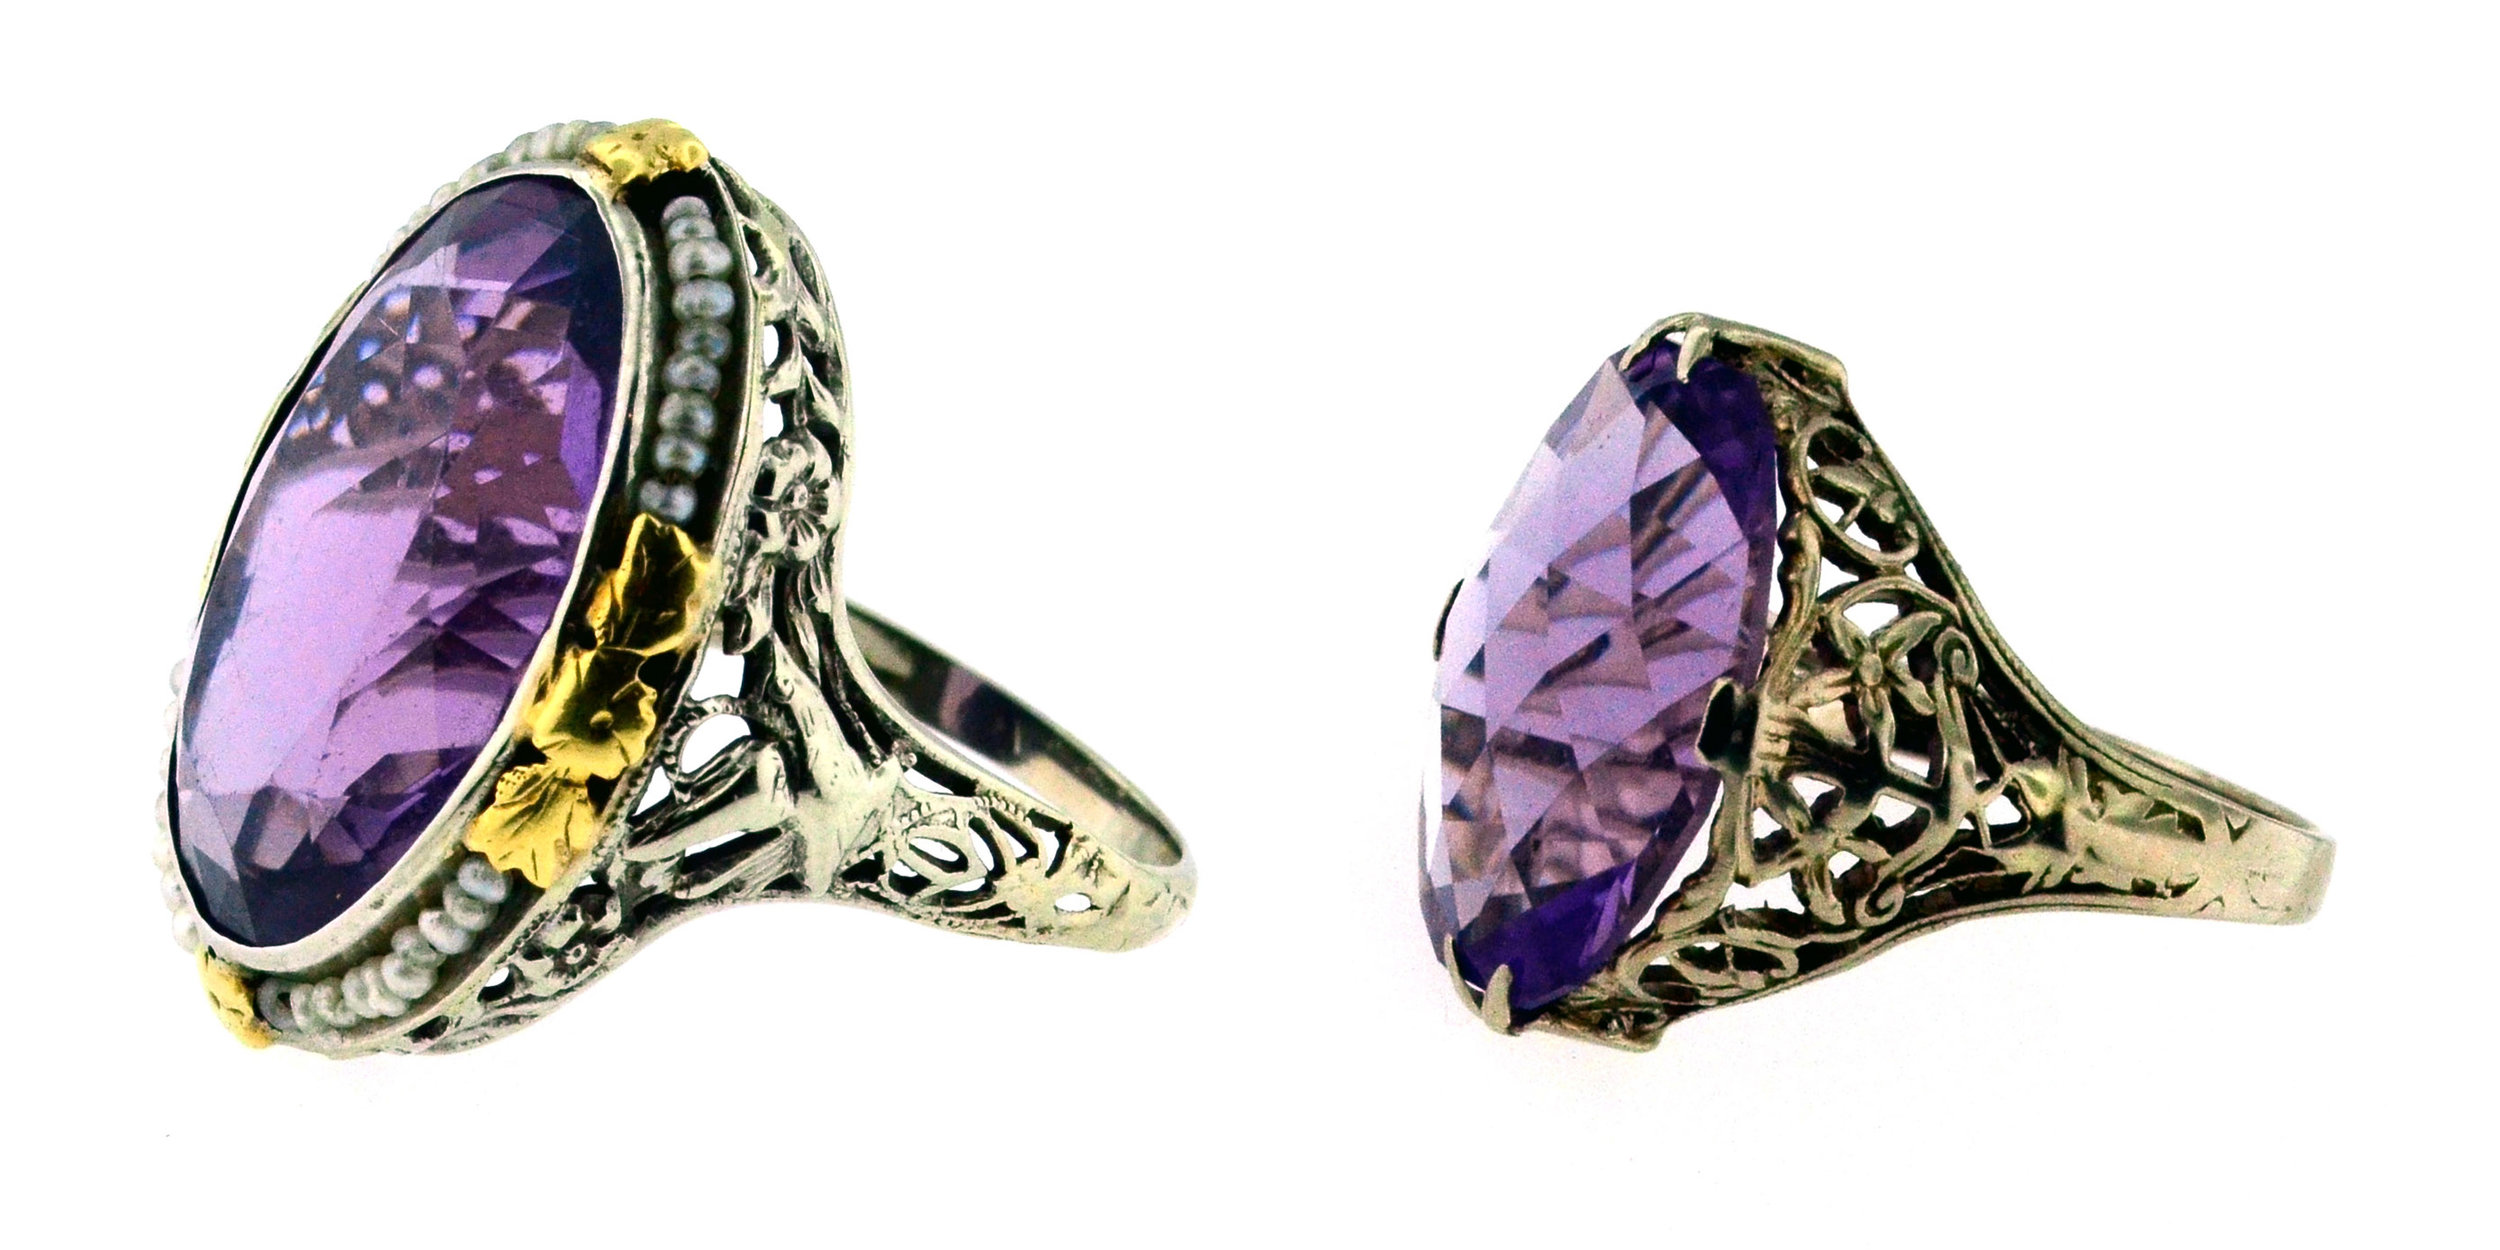 Left: A gorgeous white and yellow gold filigree dinner ring from the late teens, set with an oval amethysts and surrounded with a strand of seed pearls. Right: A 1920's white gold and amethyst filigree dinner ring.